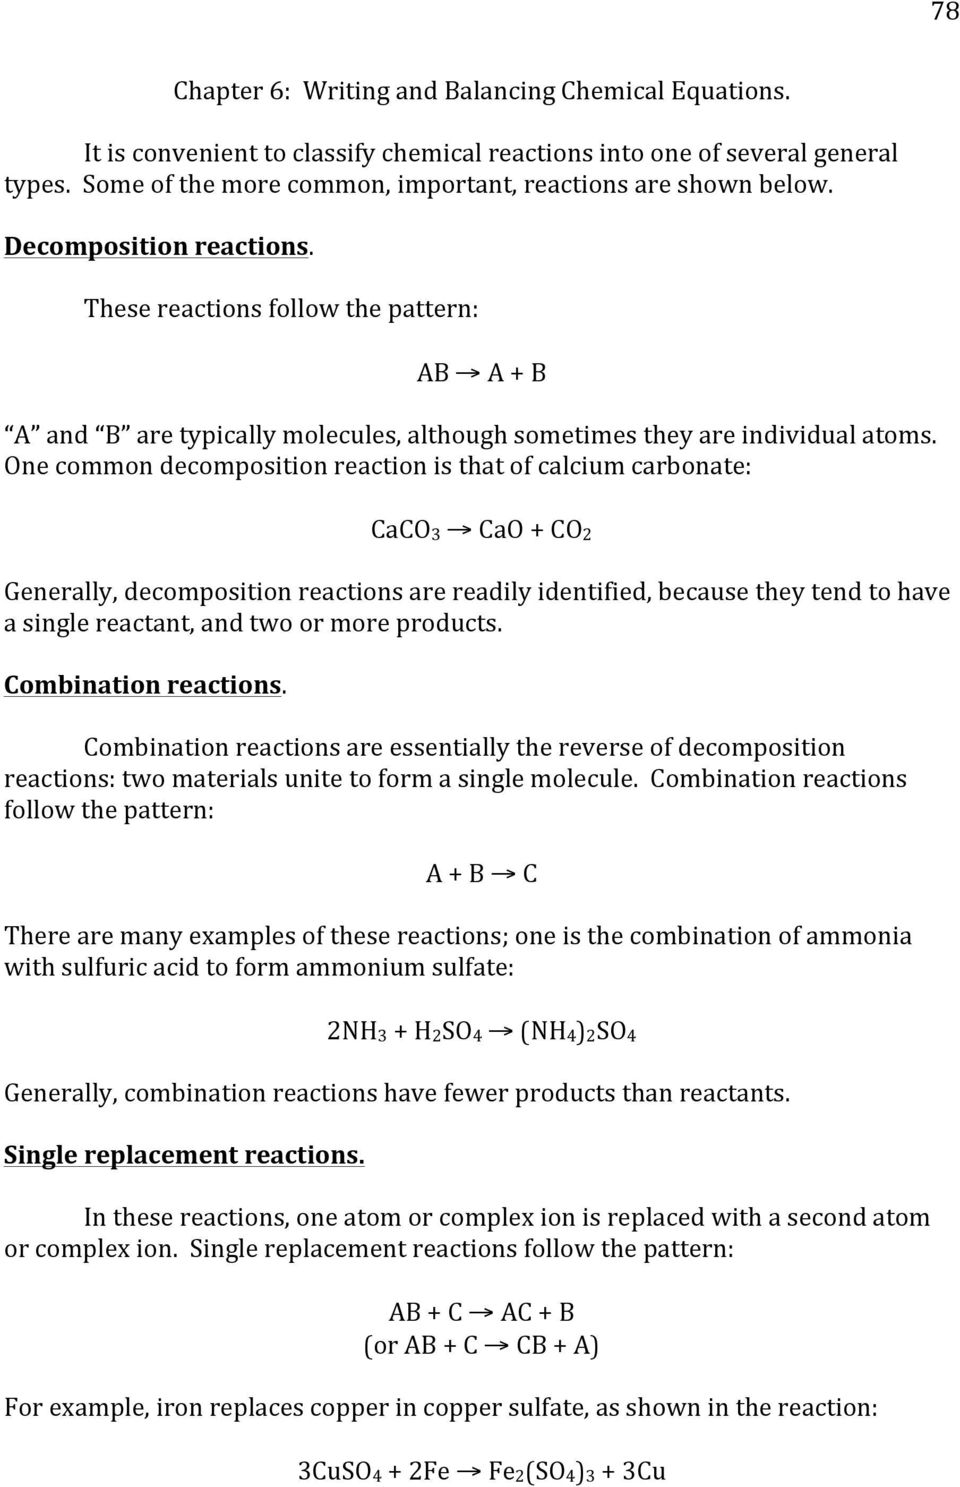 Chapter 6: Writing And Balancing Chemical Equations. Ab A +